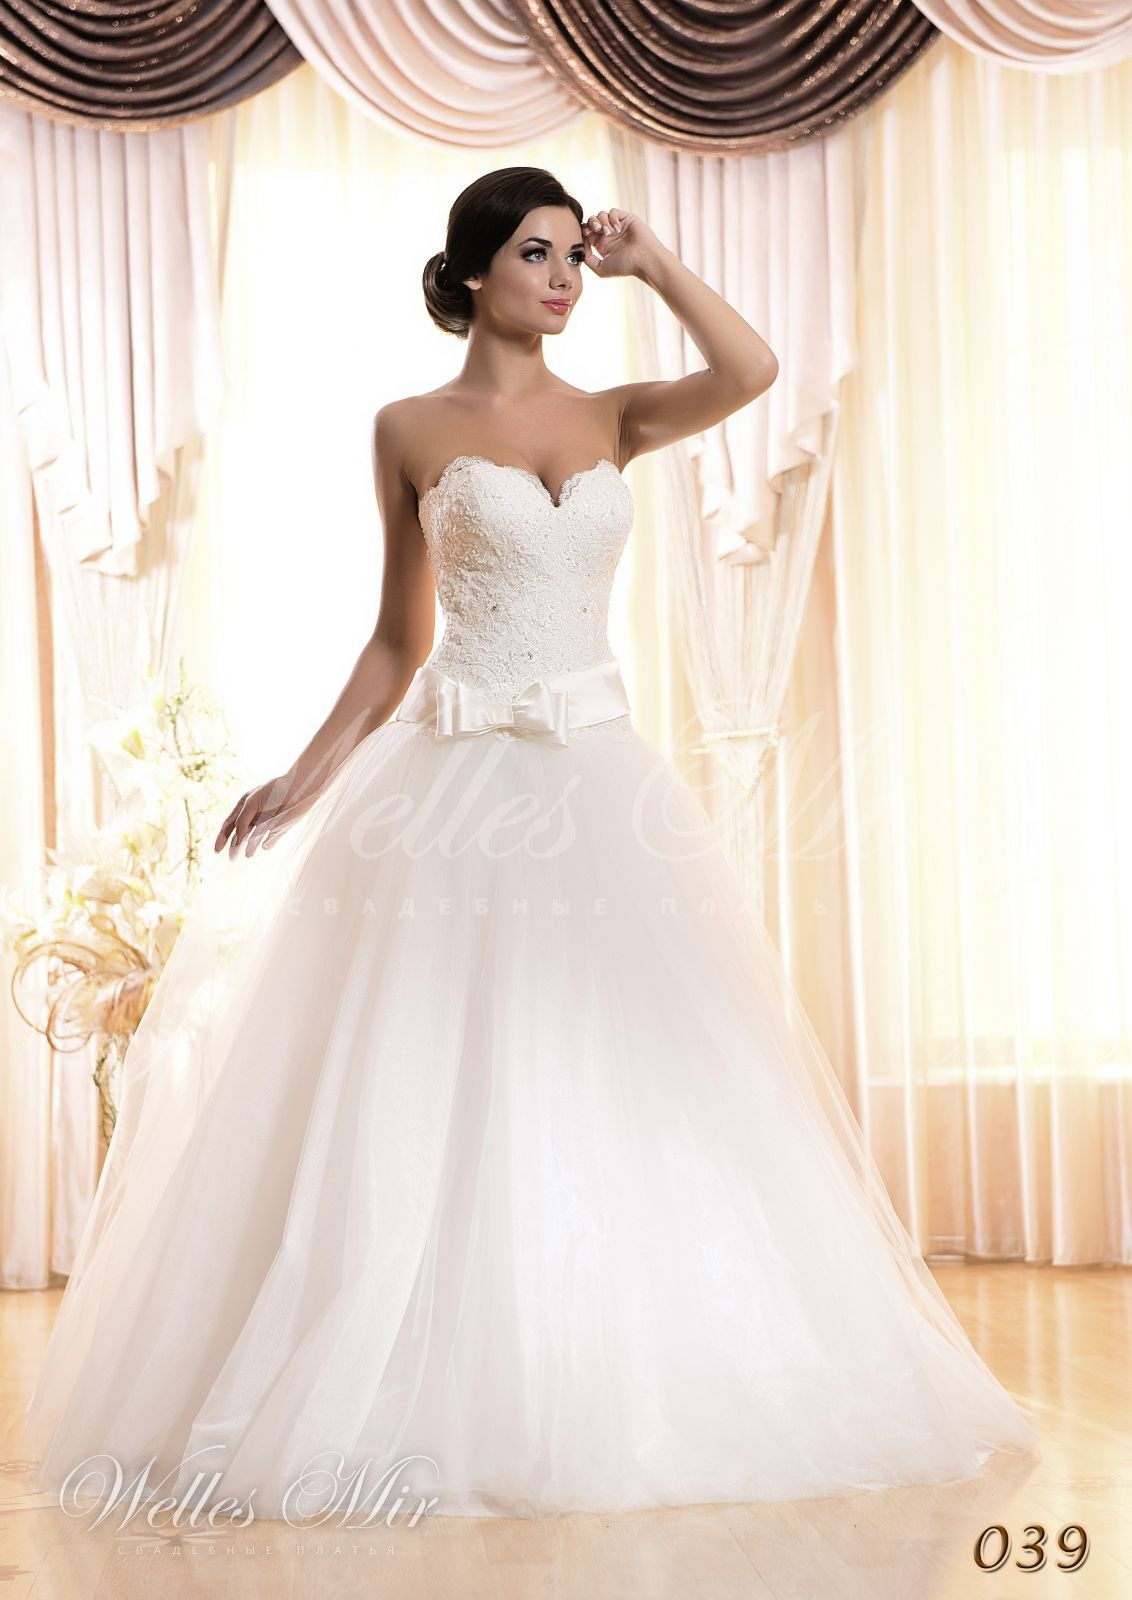 Wedding dresses 039